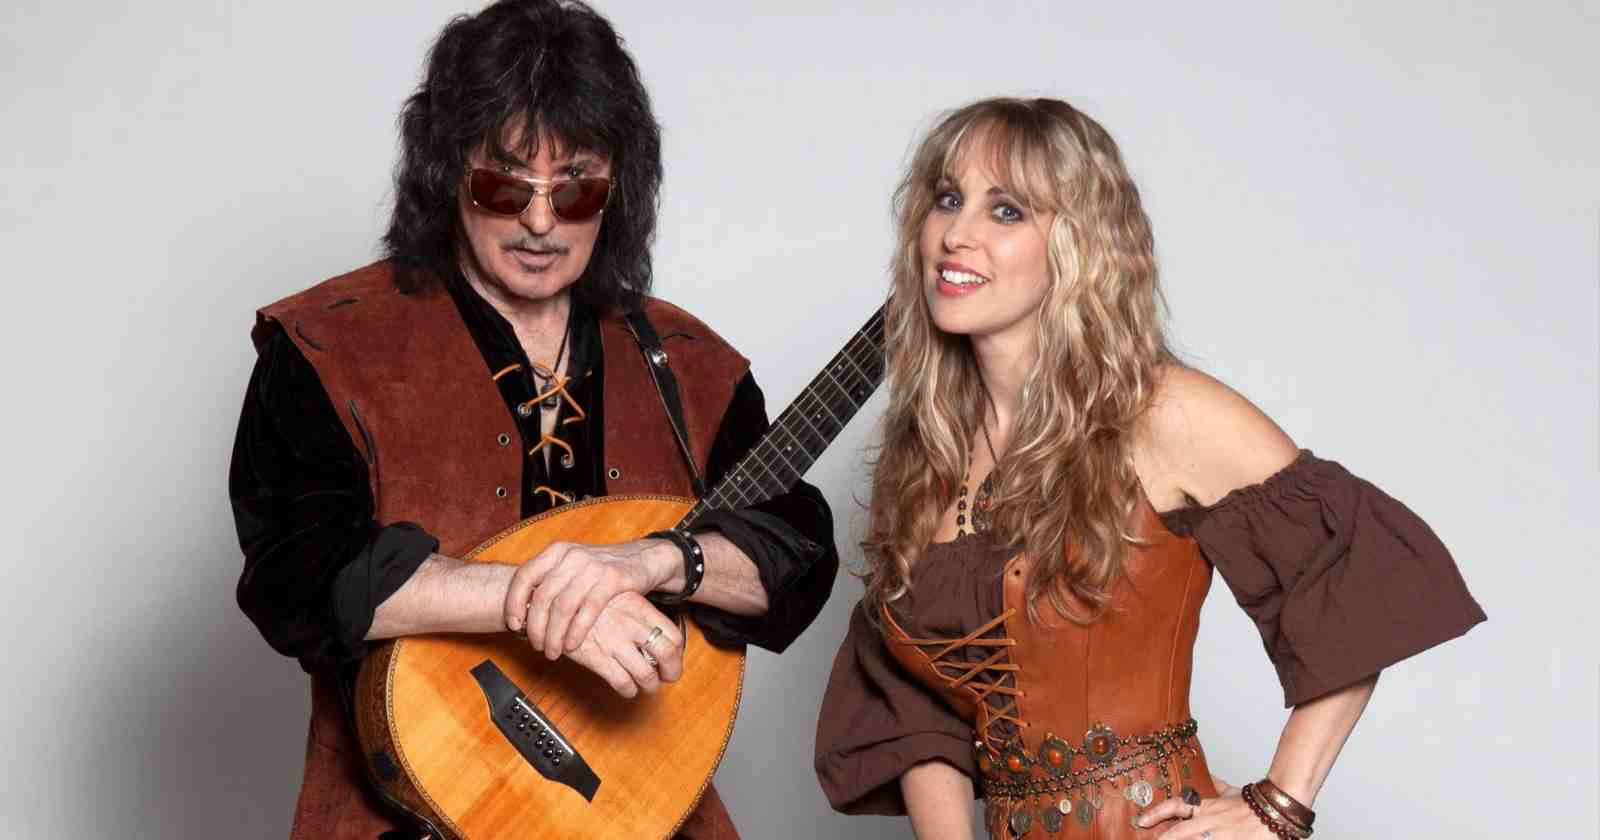 Ritchie Blackmore Candice Night